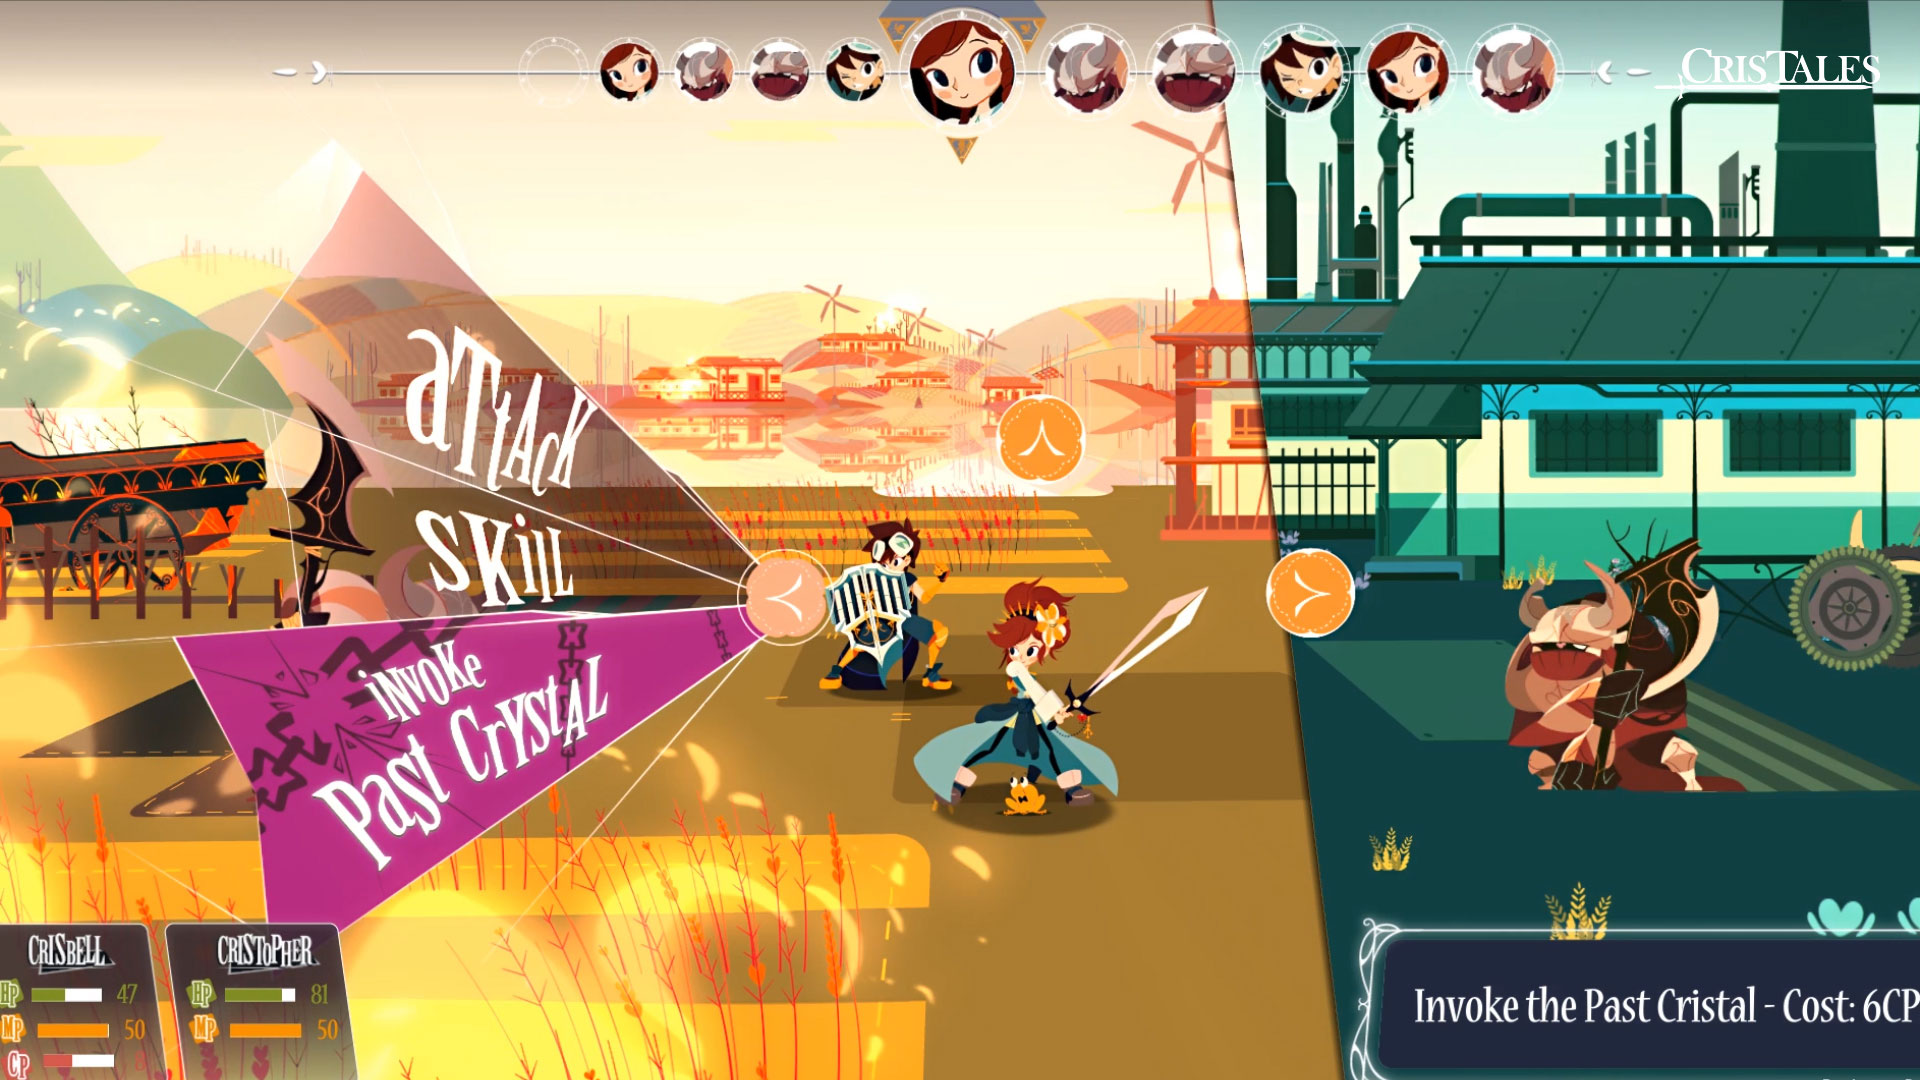 A screenshot of battle in Cris Tales, where the battle menu is displayed showing the menu commands 'Attack', 'Skill' and 'Invoke Past Crystal'.